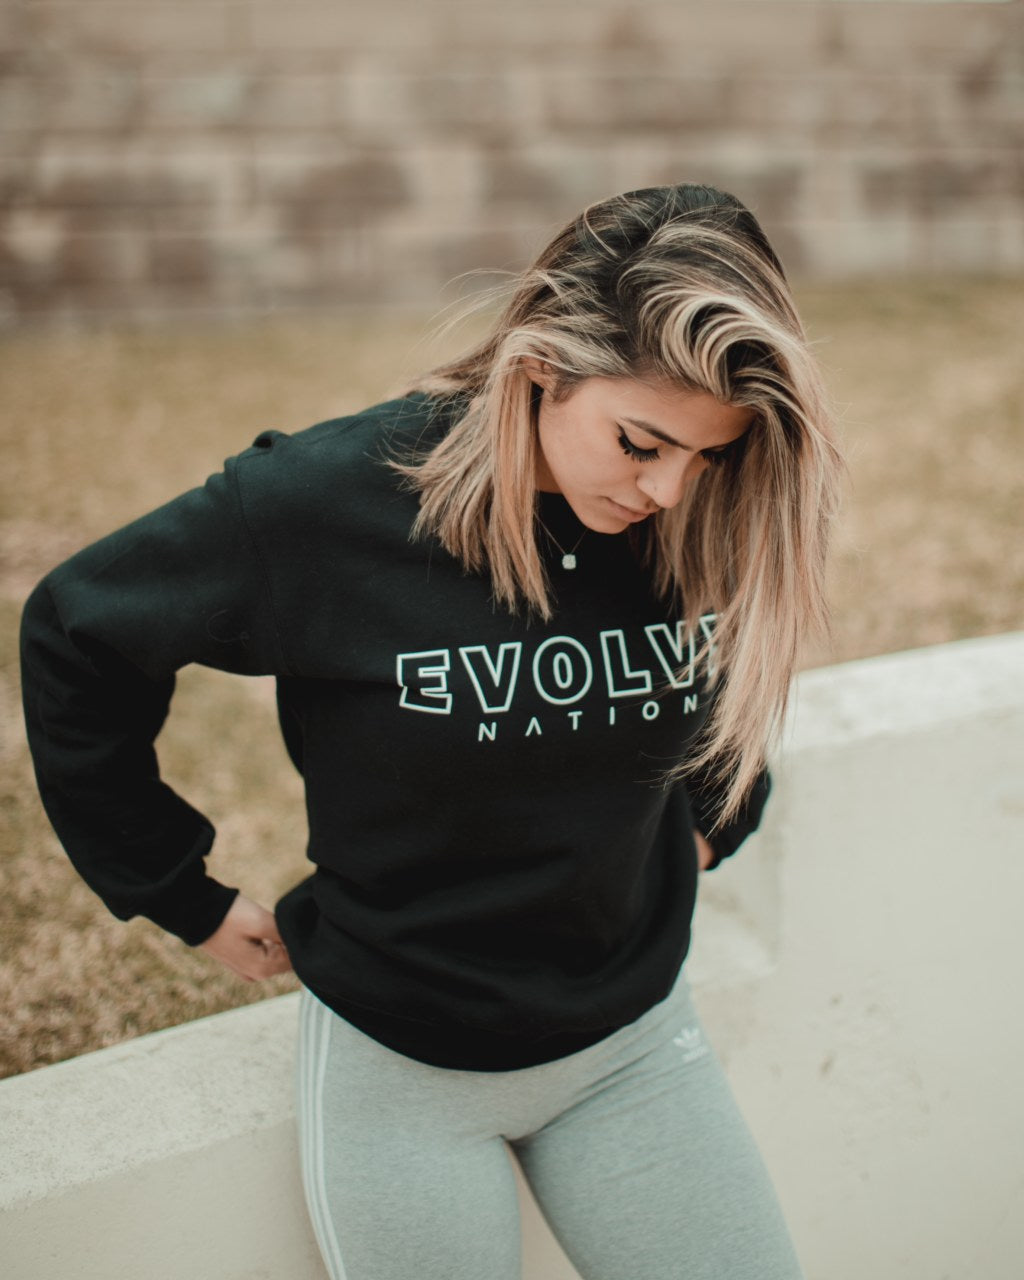 Evolve Nation Black Signature Sweater (Unisex)